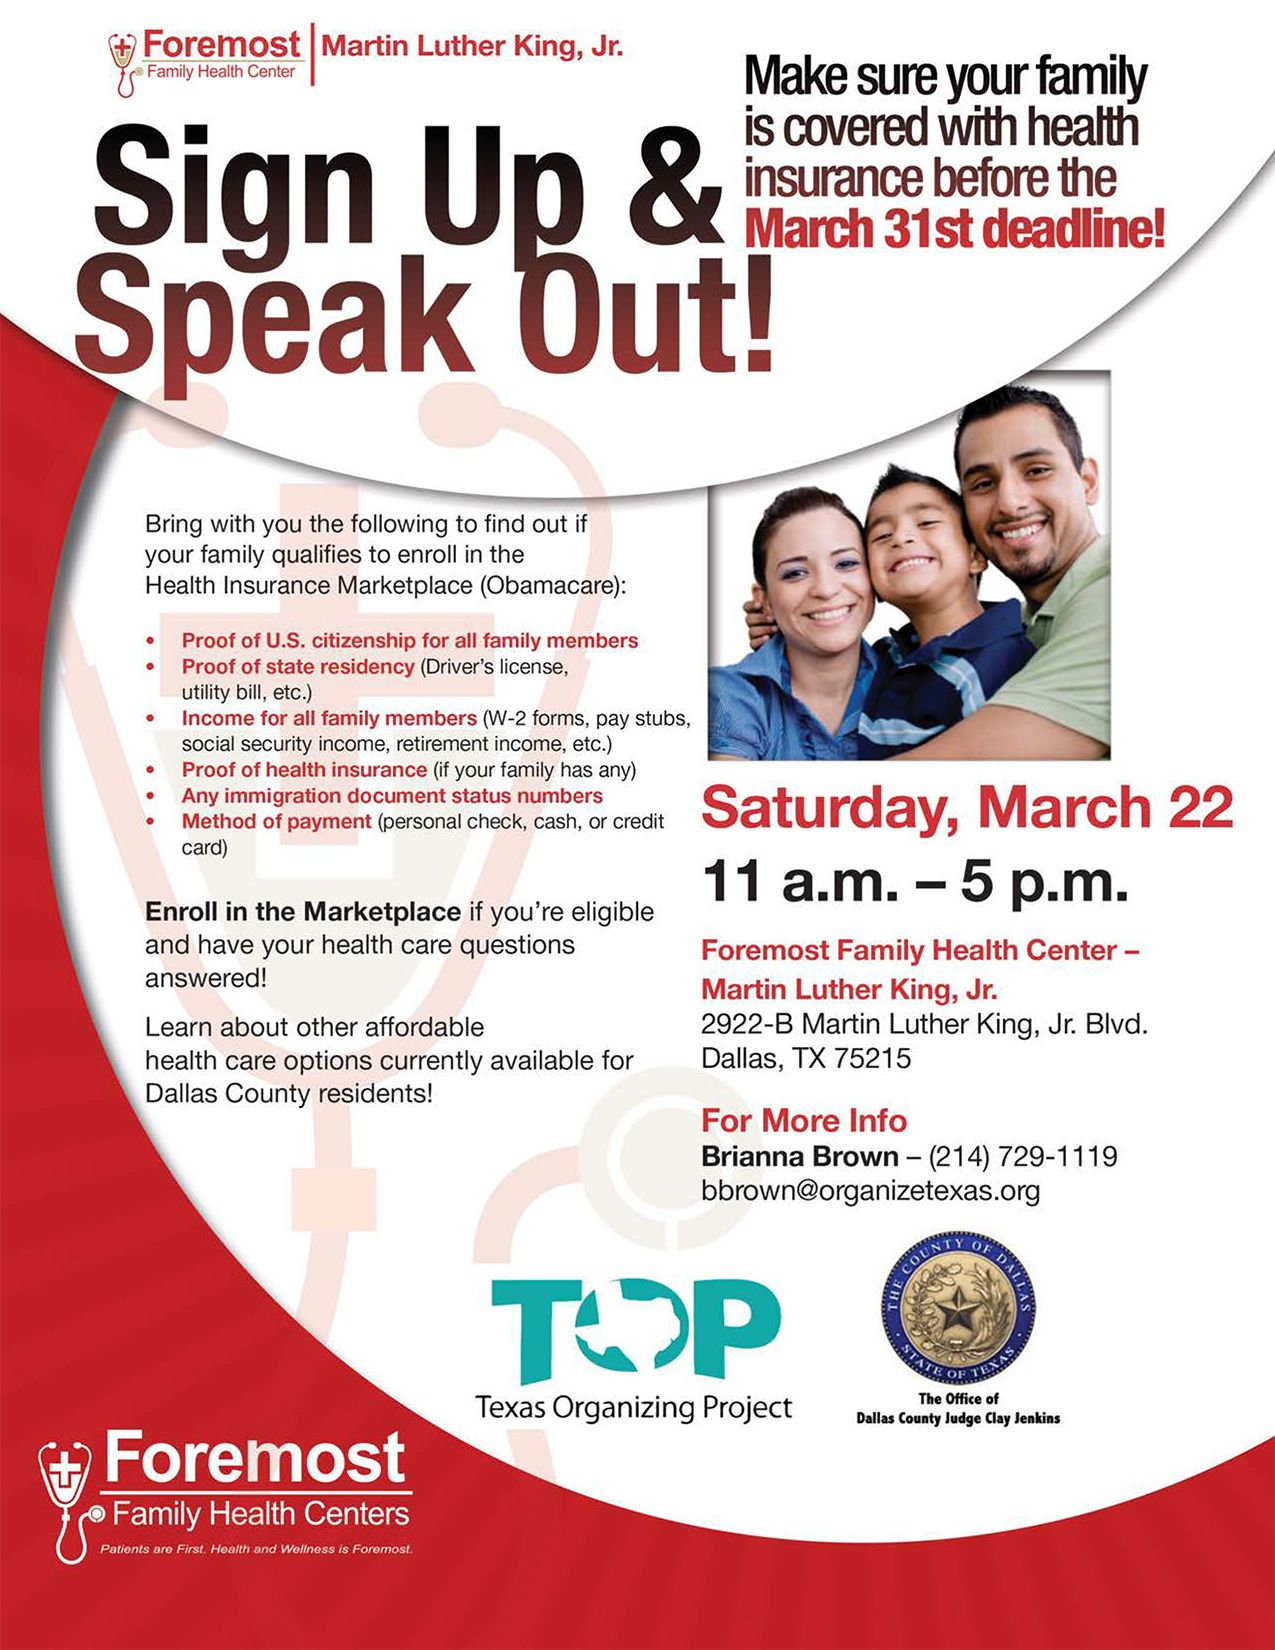 Sign up and Speak Out! Find out if your family qualifies